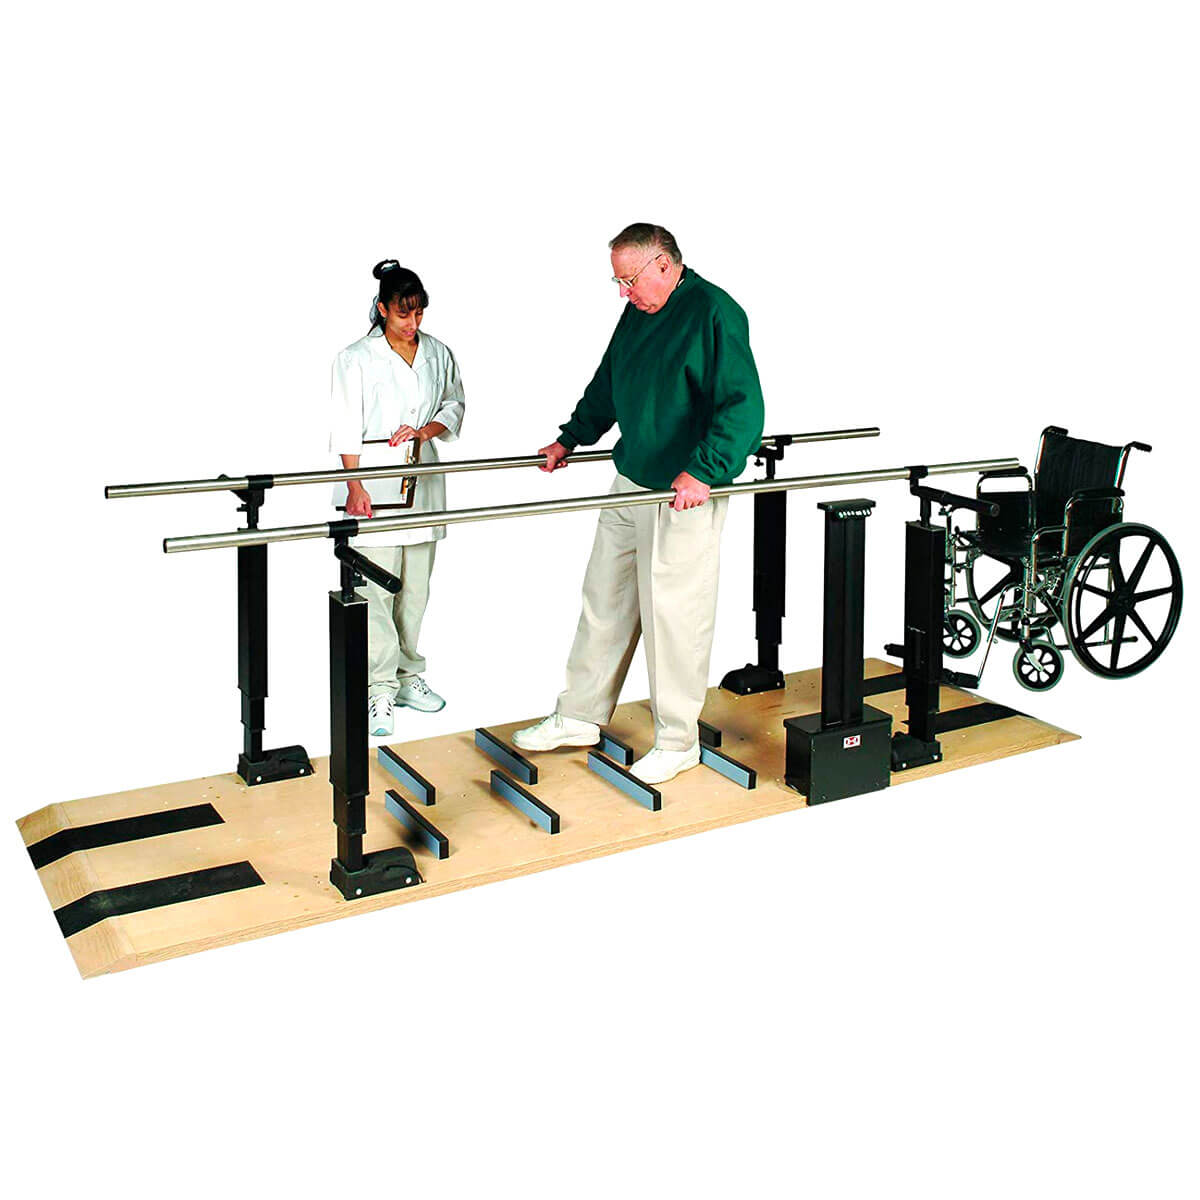 Wood Platform Mounted Parallel Bars - Electric Height/Manual Width Adjustable